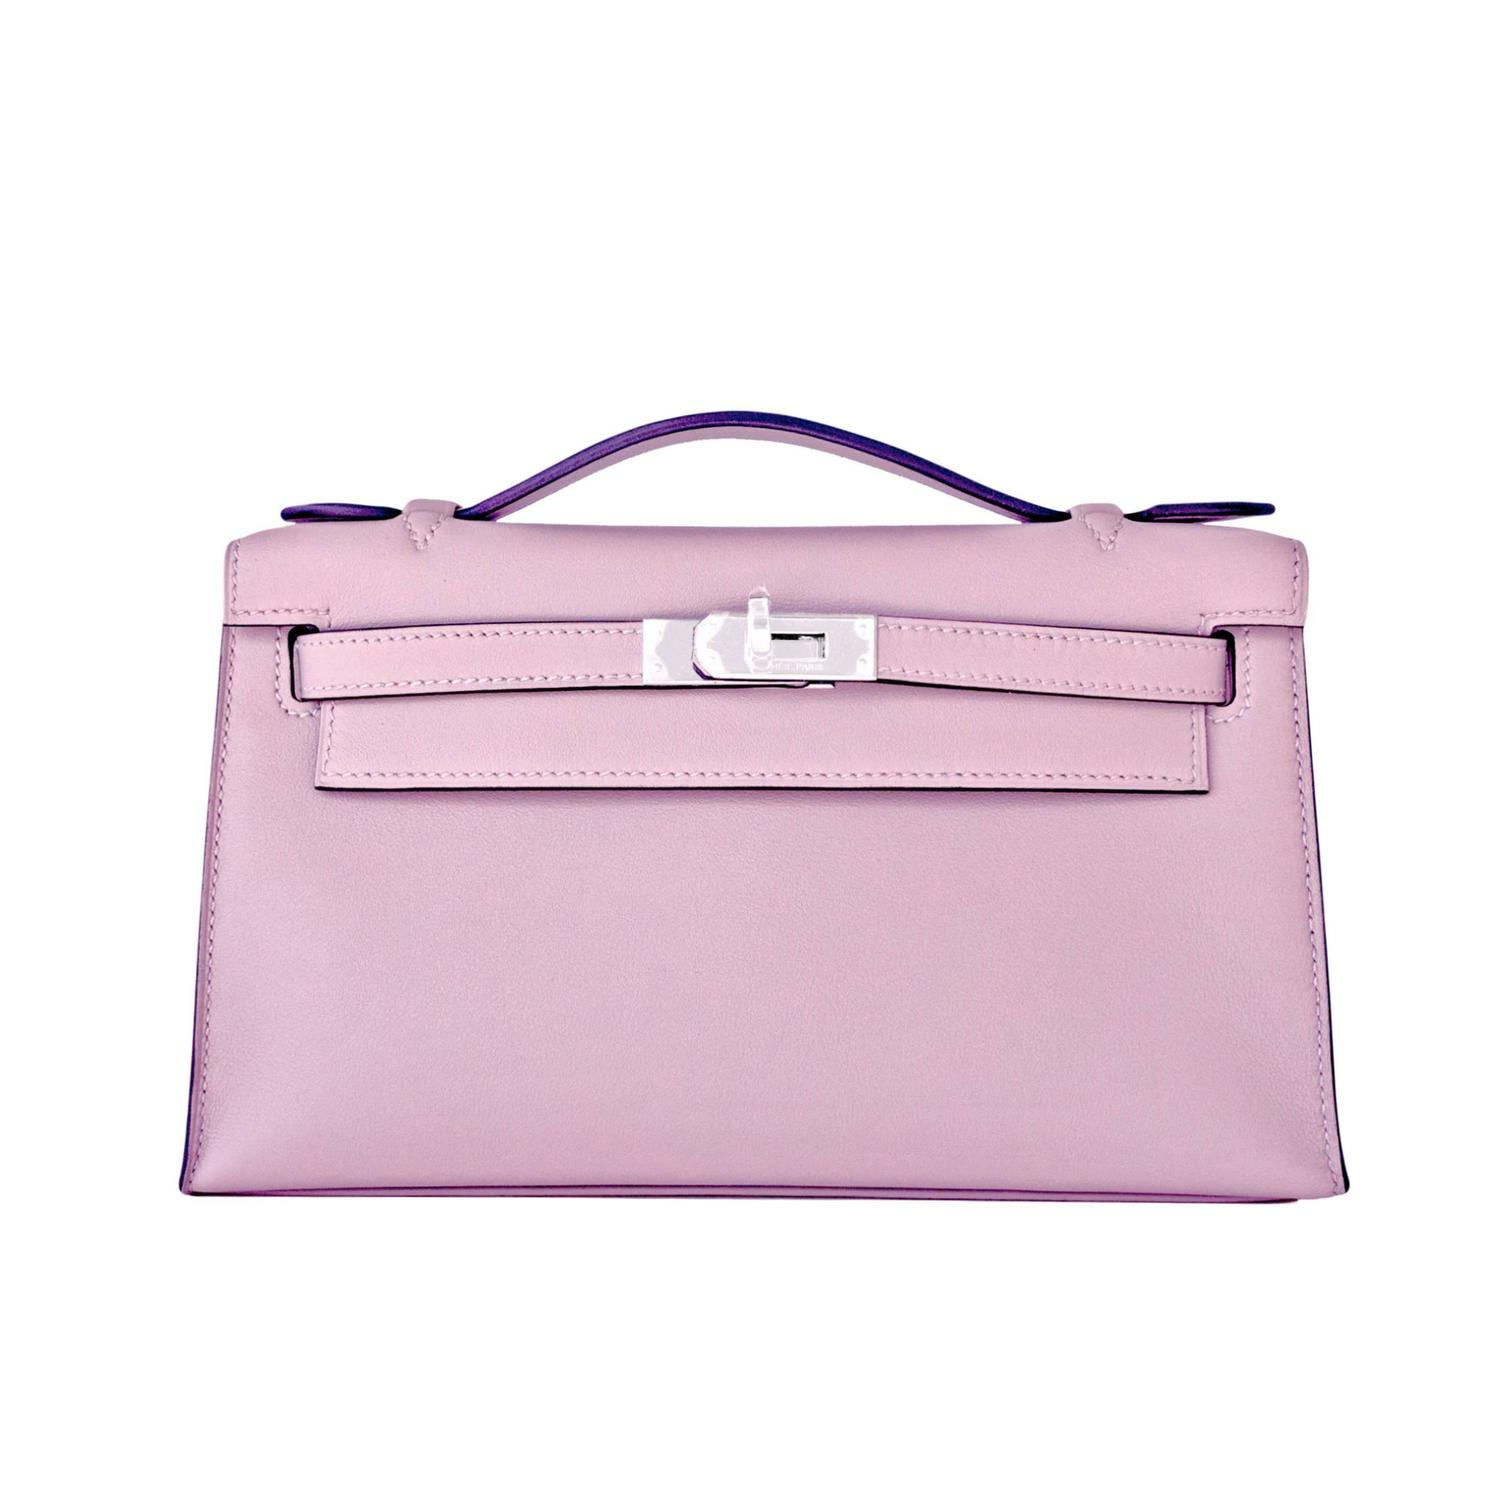 kelly birkin bag - Vintage Herm��s Clutches - 148 For Sale at 1stdibs